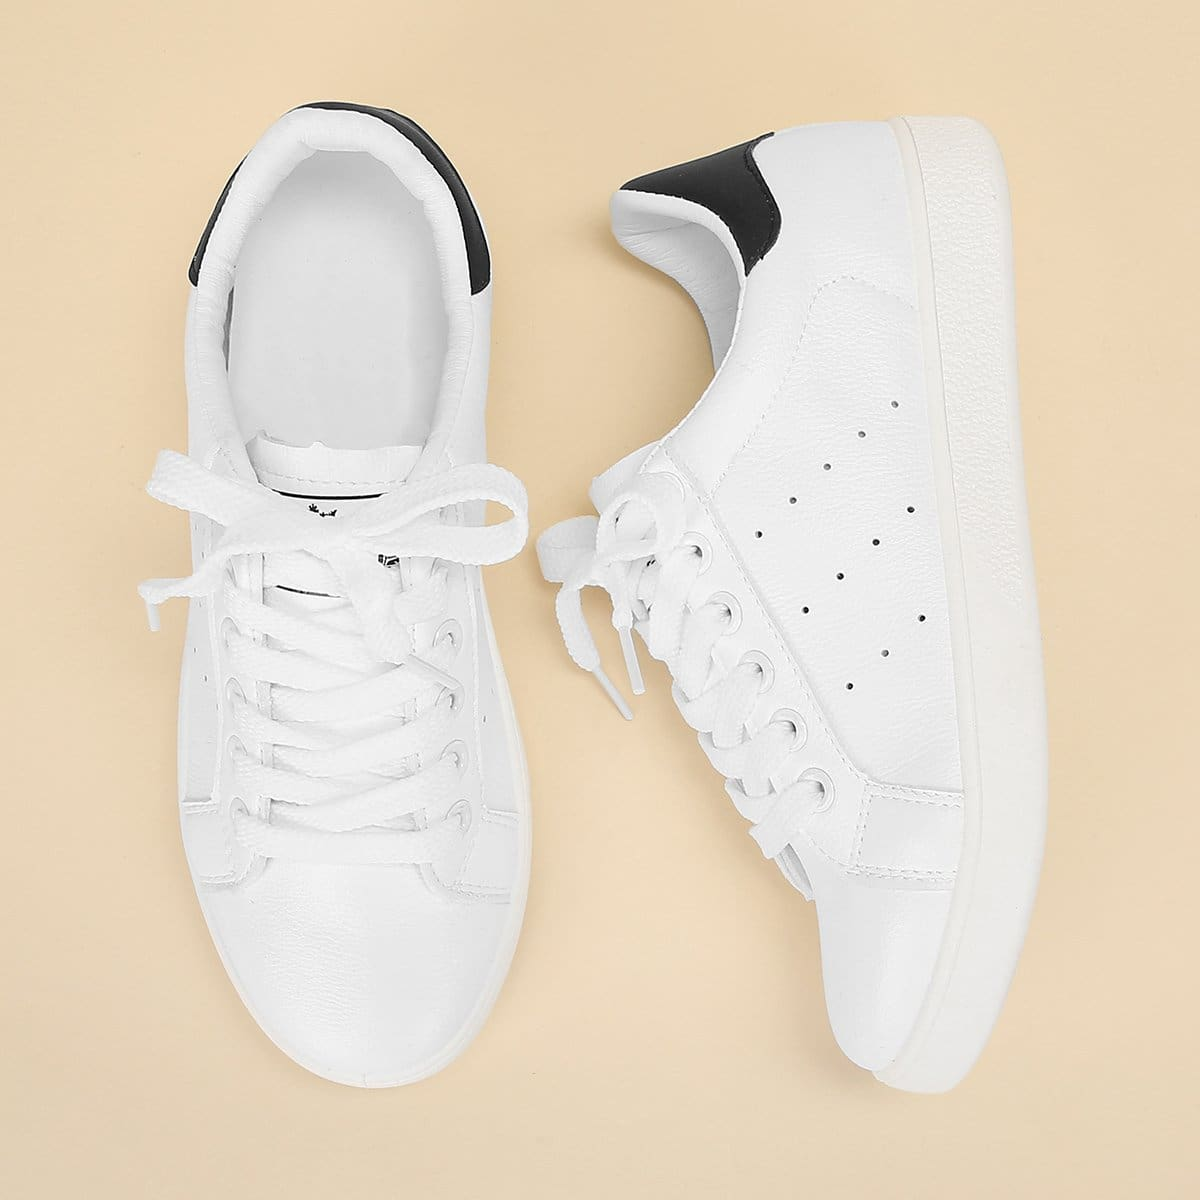 SHEIN coupon: Lace Up Plain Sneakers